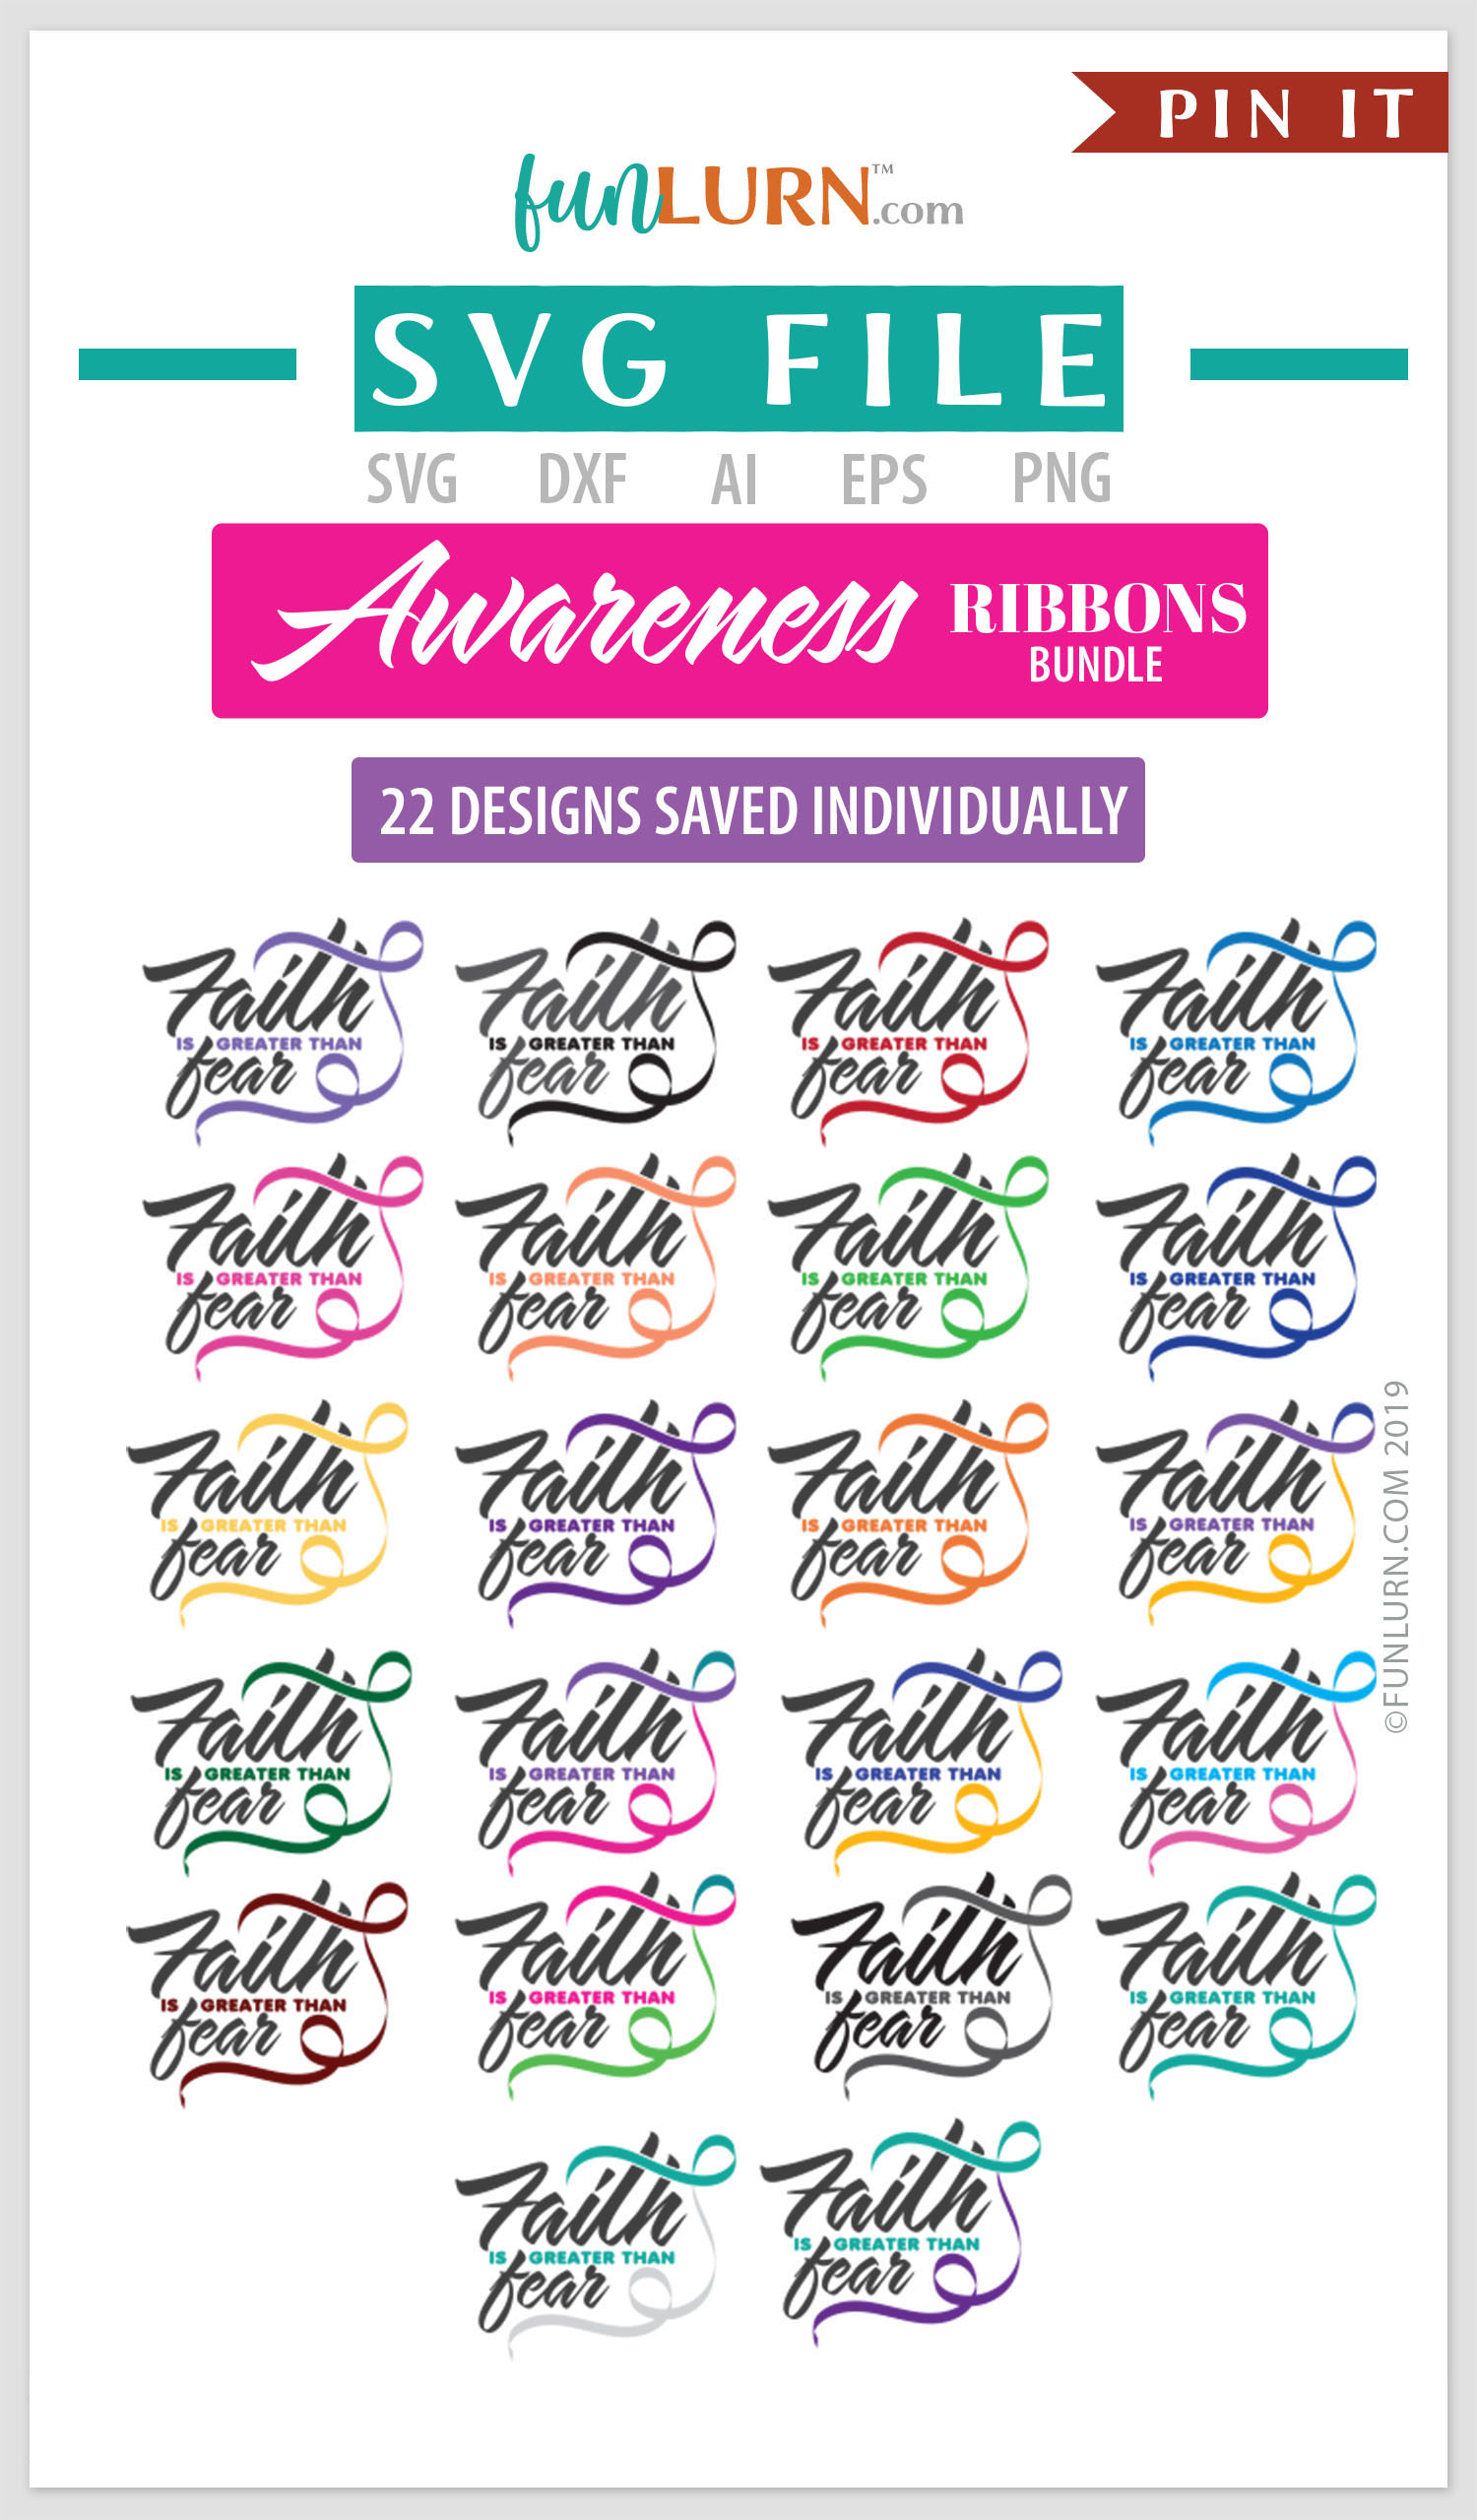 Faith is Greater Than Fear Ribbon Awareness SVG Bundle example image 2